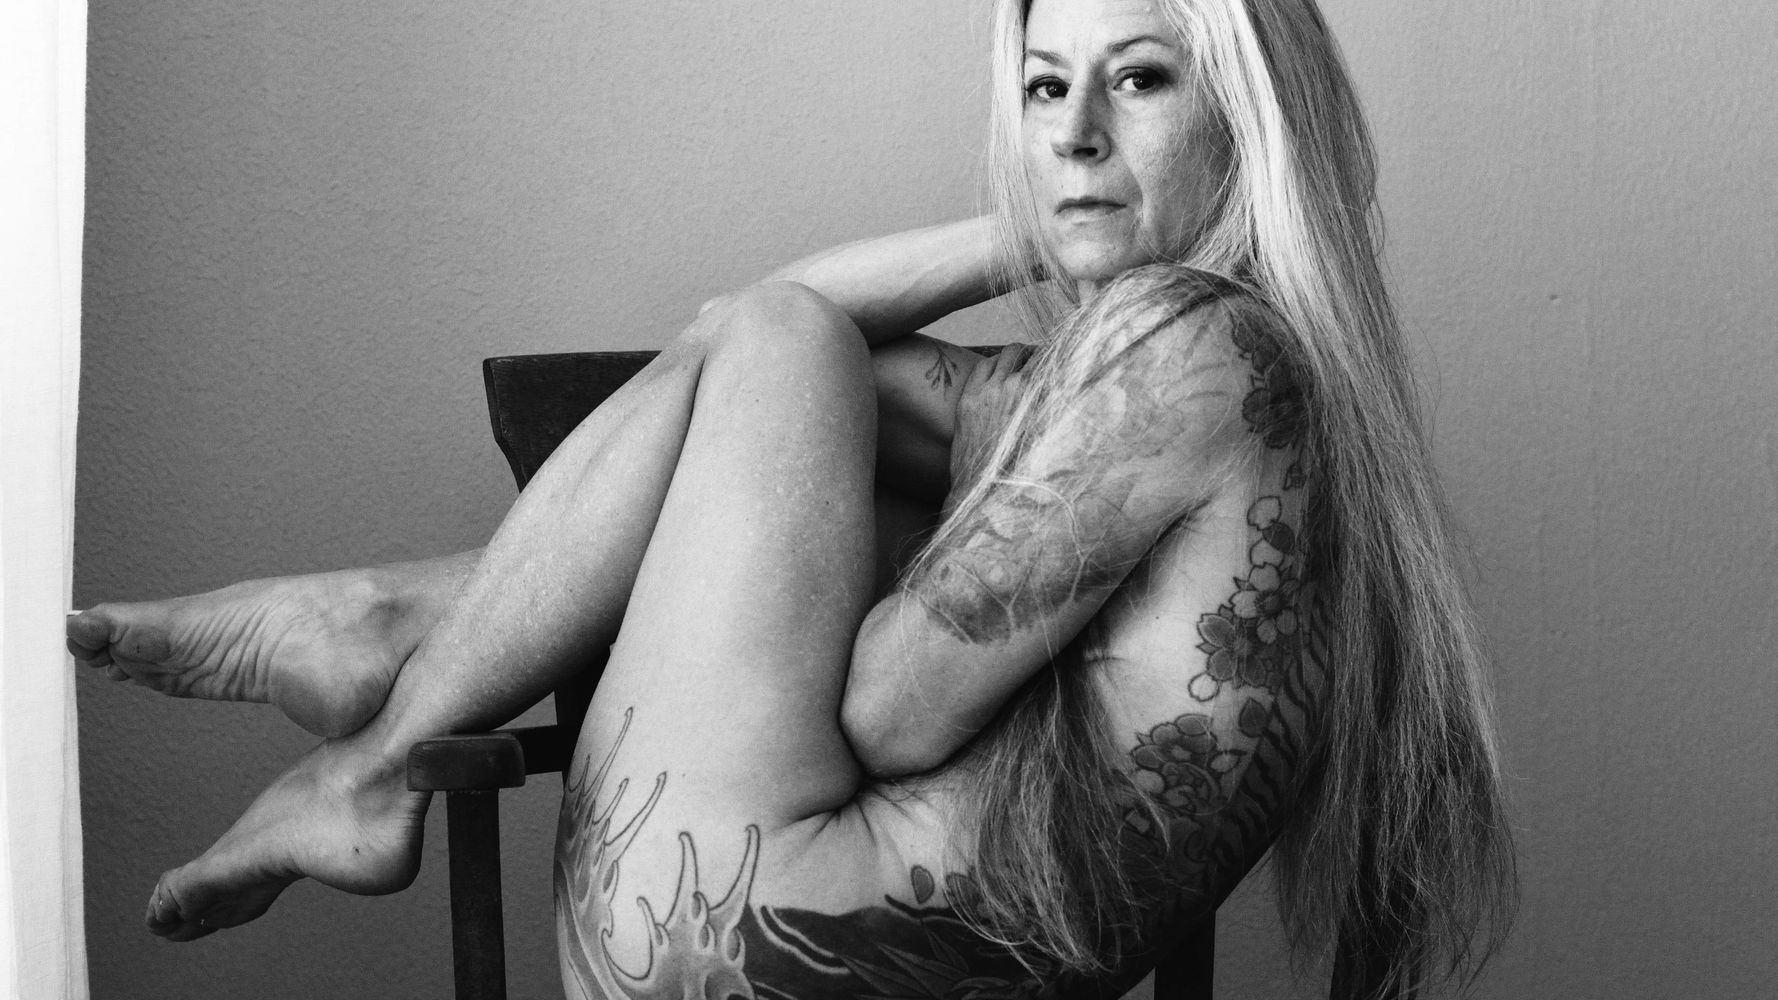 all natural milf nude